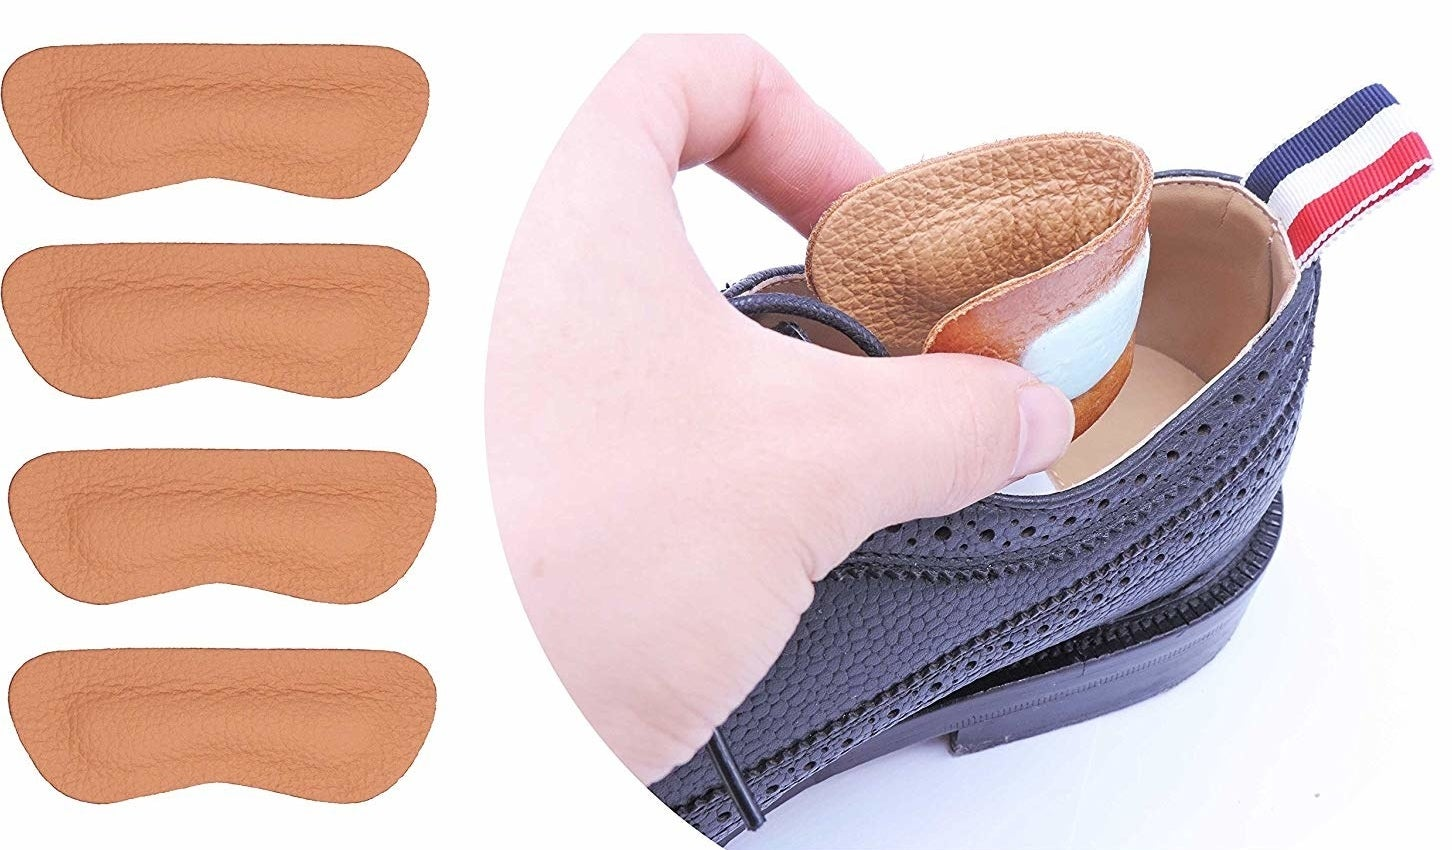 Photo of model placing leather cushion inserts in shoe next to four leather cushion inserts